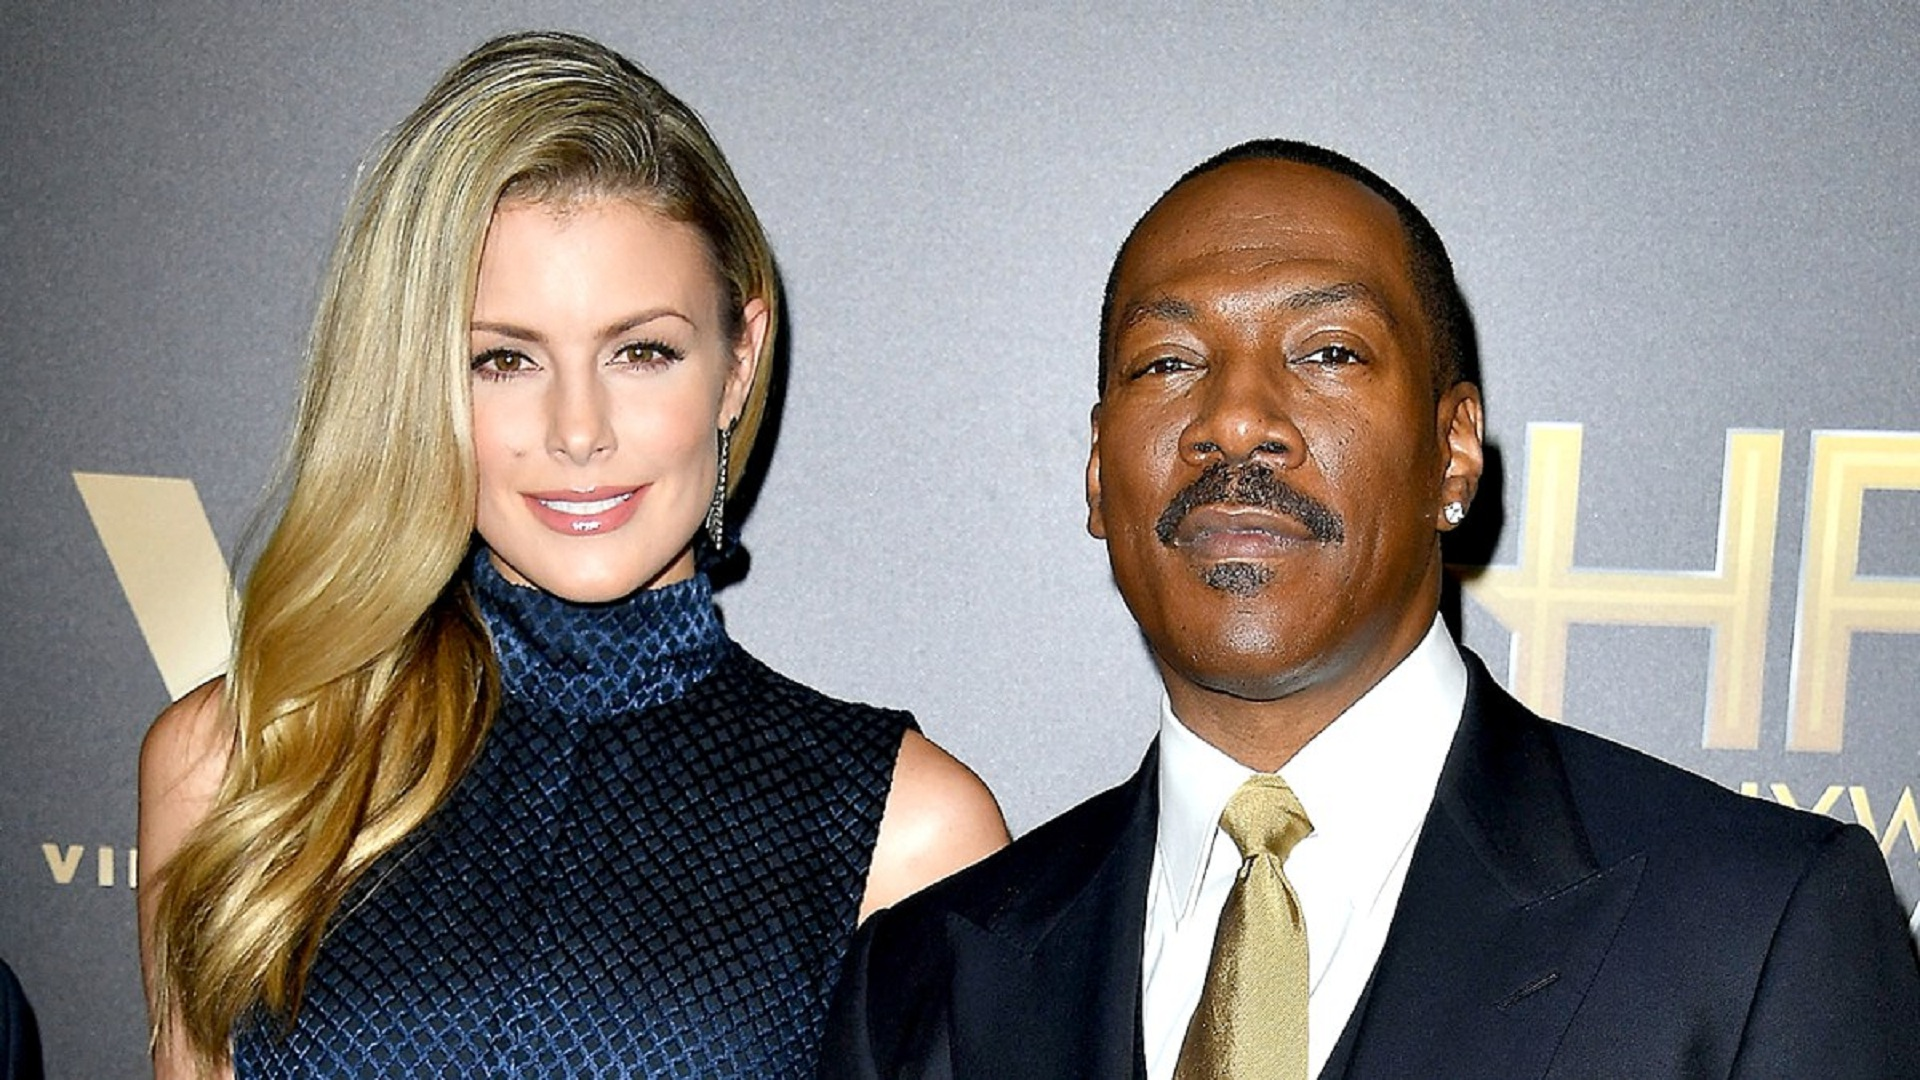 Eddie Murphy Is Expecting his 10th Child Via Partner Paige Butcher!